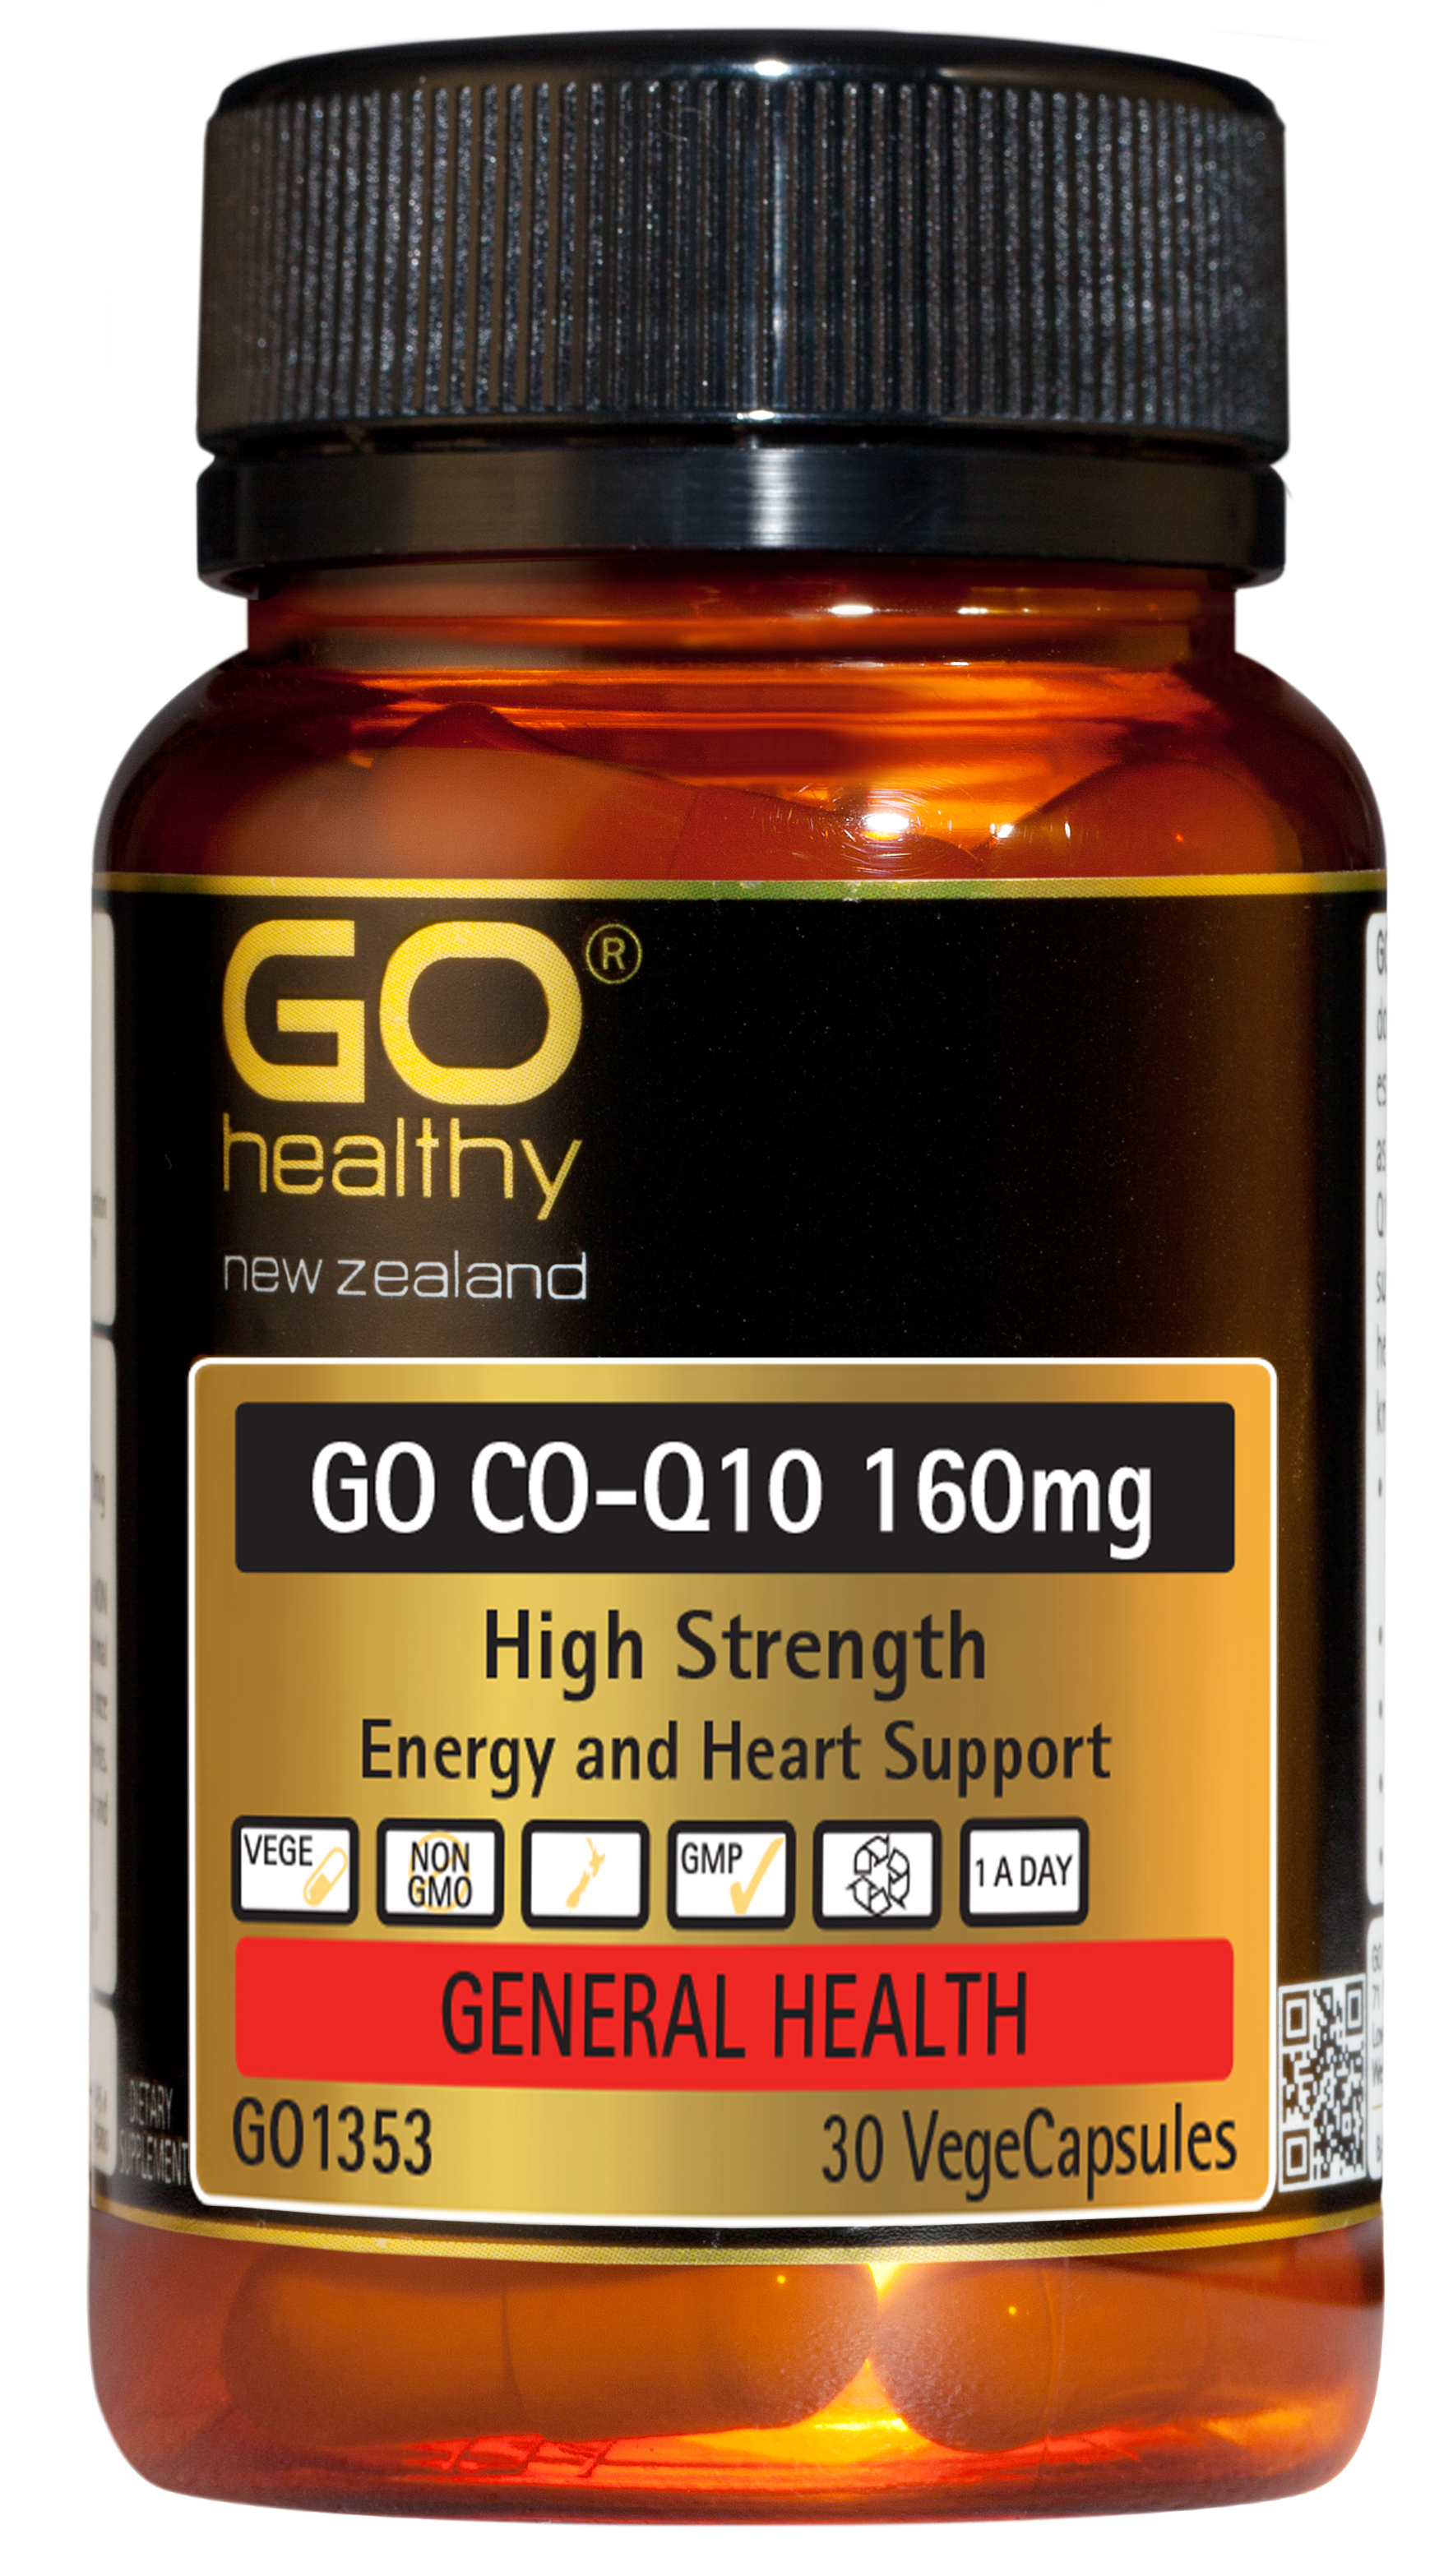 Go Healthy Co-Q10 160mg 30 VegeCaps